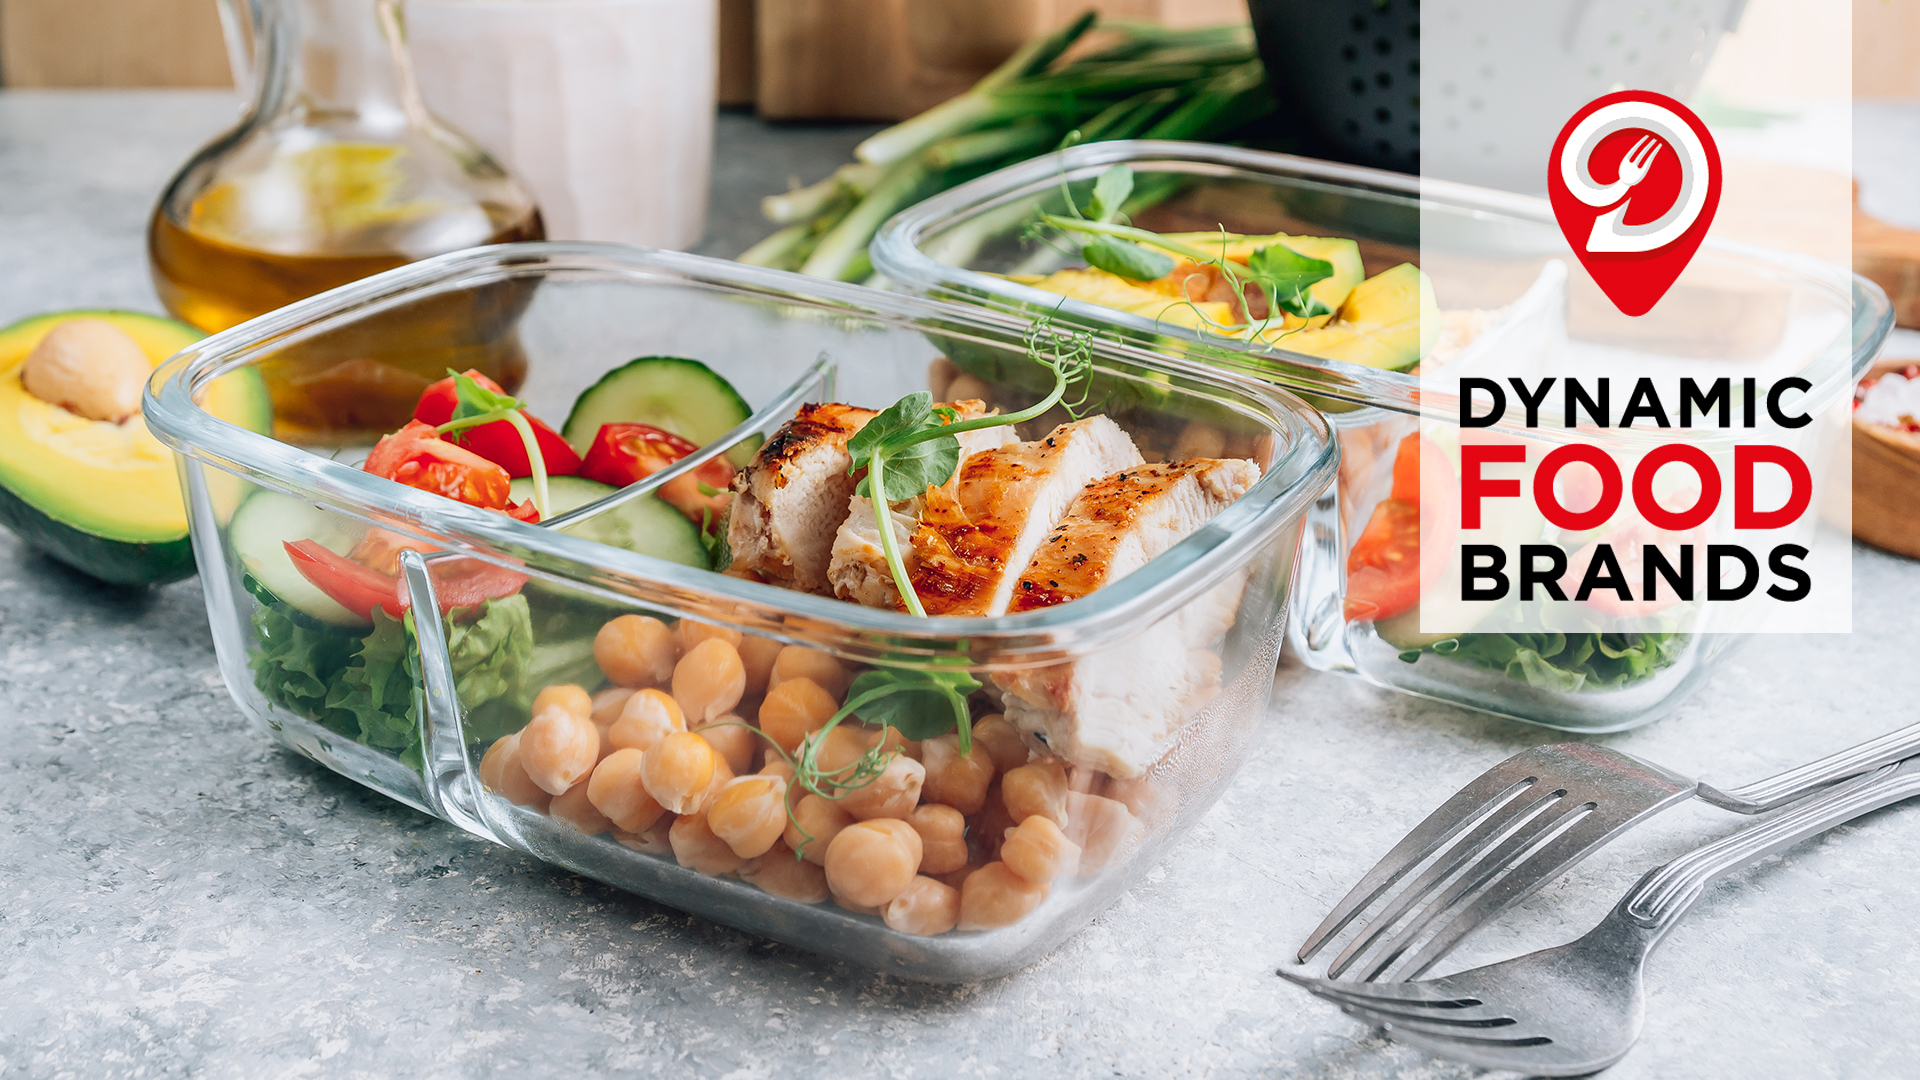 Healthy meal prep containers with chickpeas, chicken, tomatoes, cucumbers and avocados. Healthy lunch in glass containers on light gray background. Zero waste concept. Selective focus.